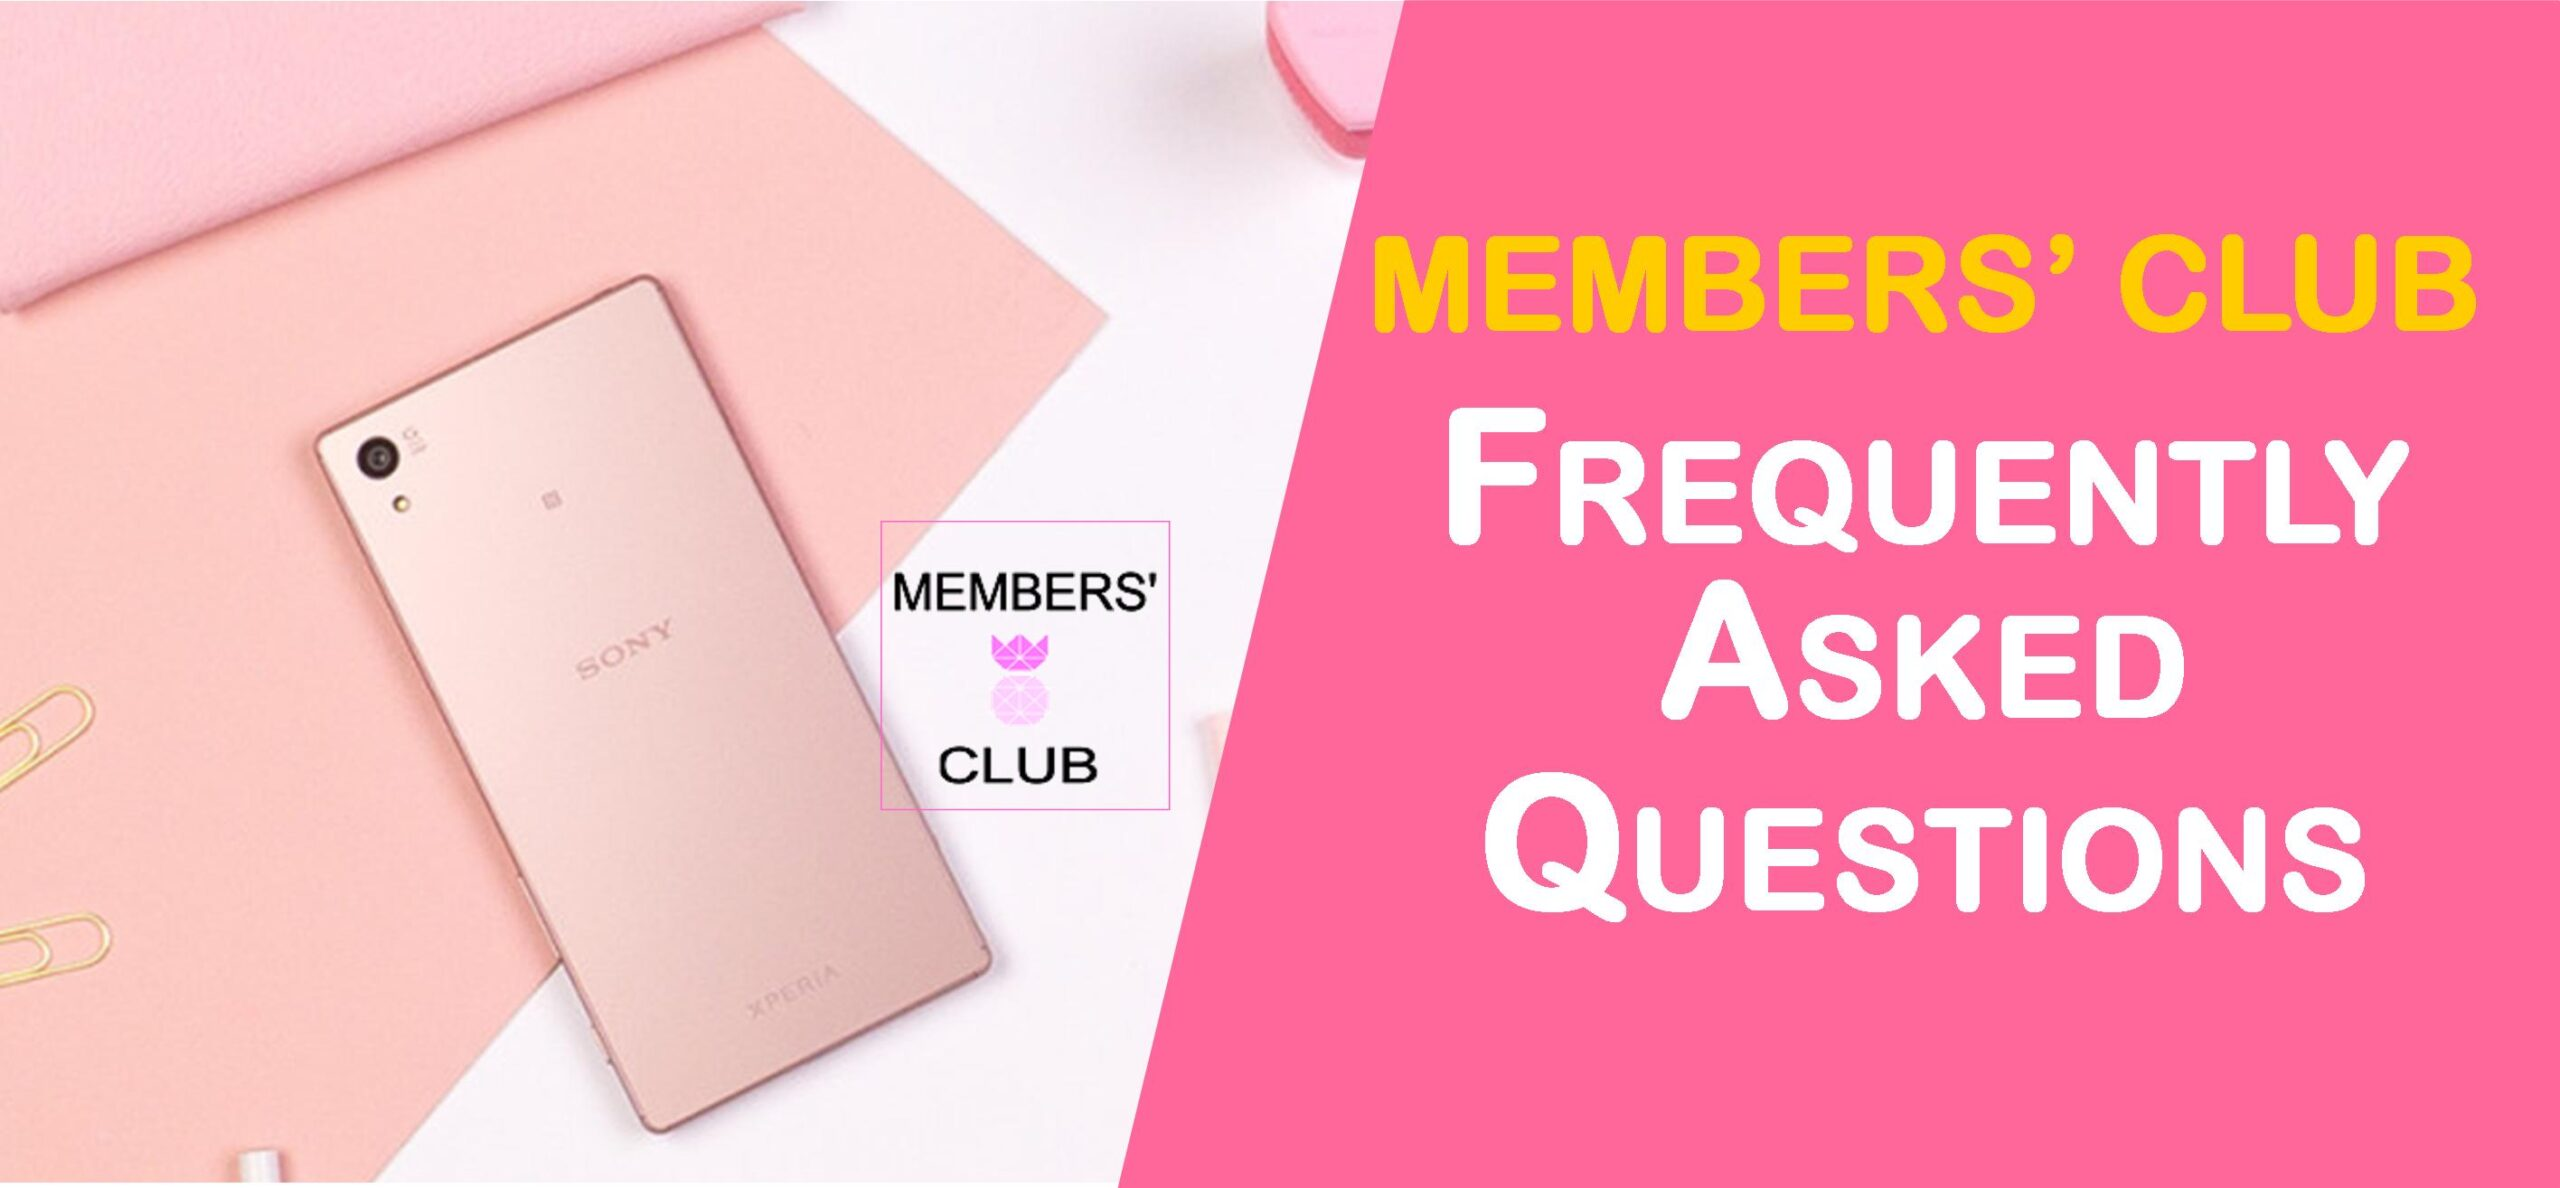 Join the Members' Club now! Today I'm going to share with you some Members' Club FAQ I'm receiving about the Members' Club.